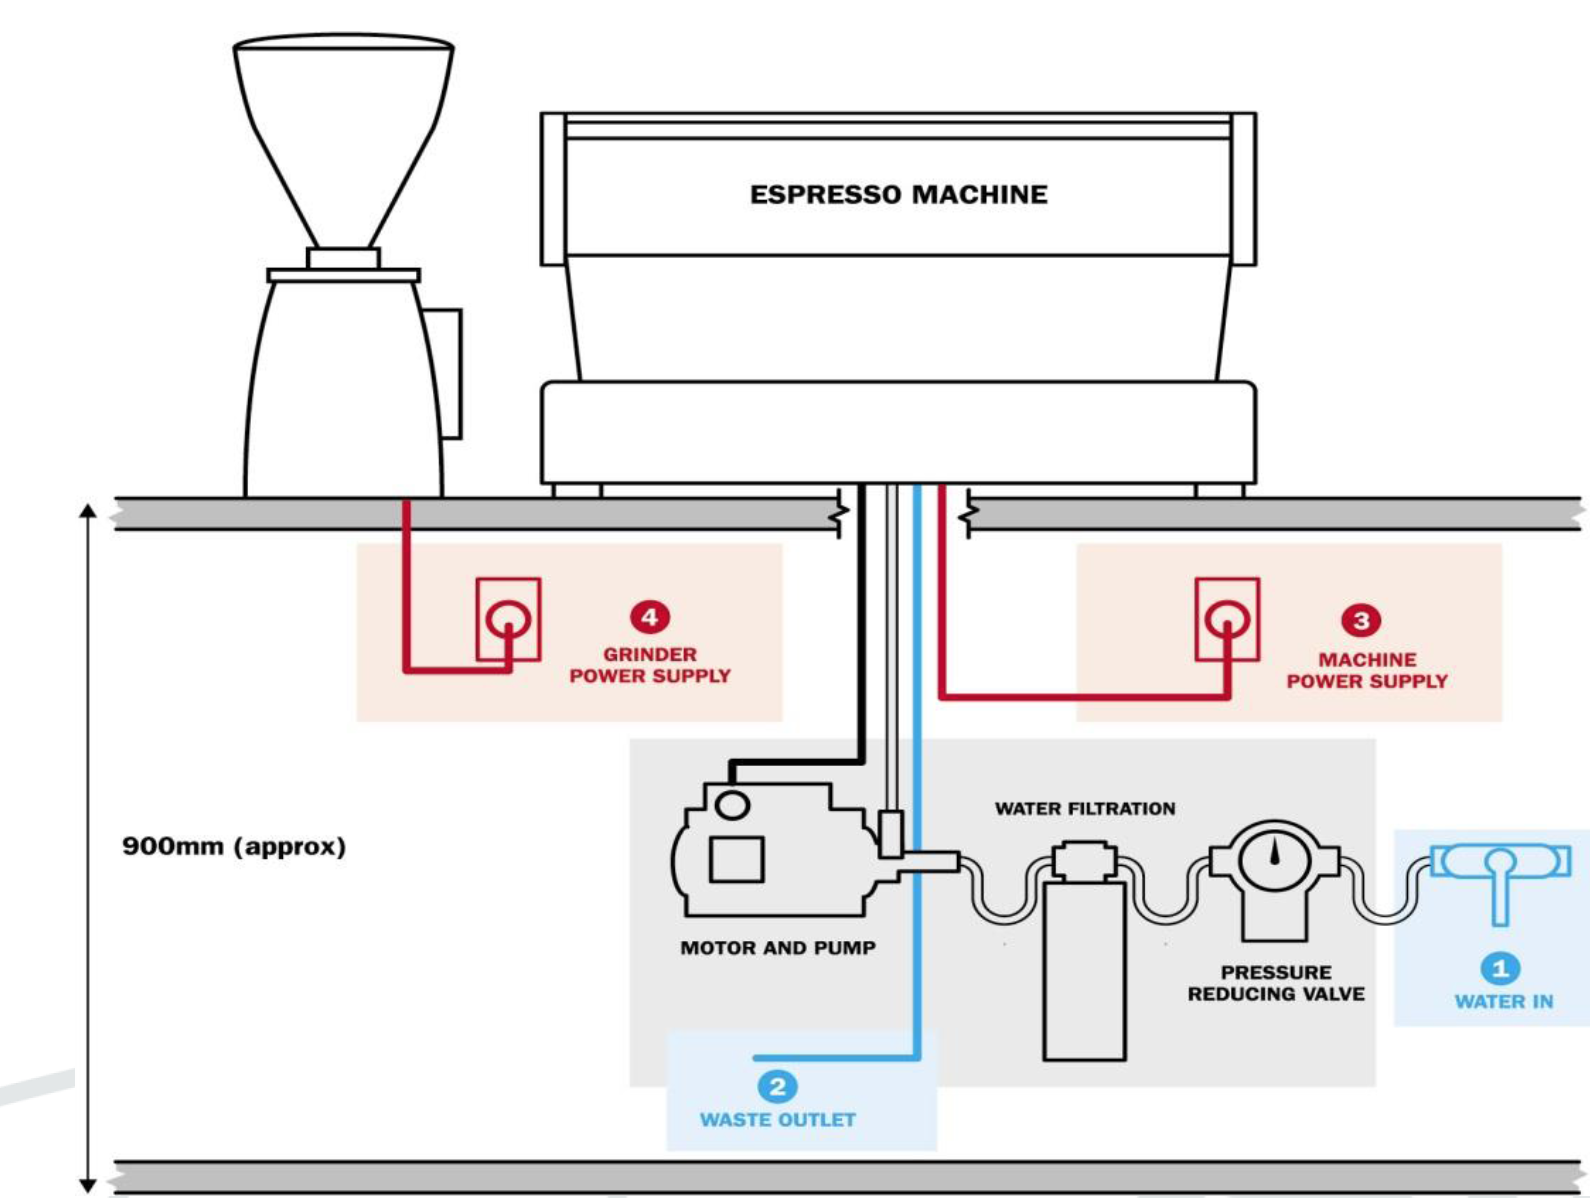 The below information is a great reference and should be used as a guide  when installing a commercial espresso machine and grinder.